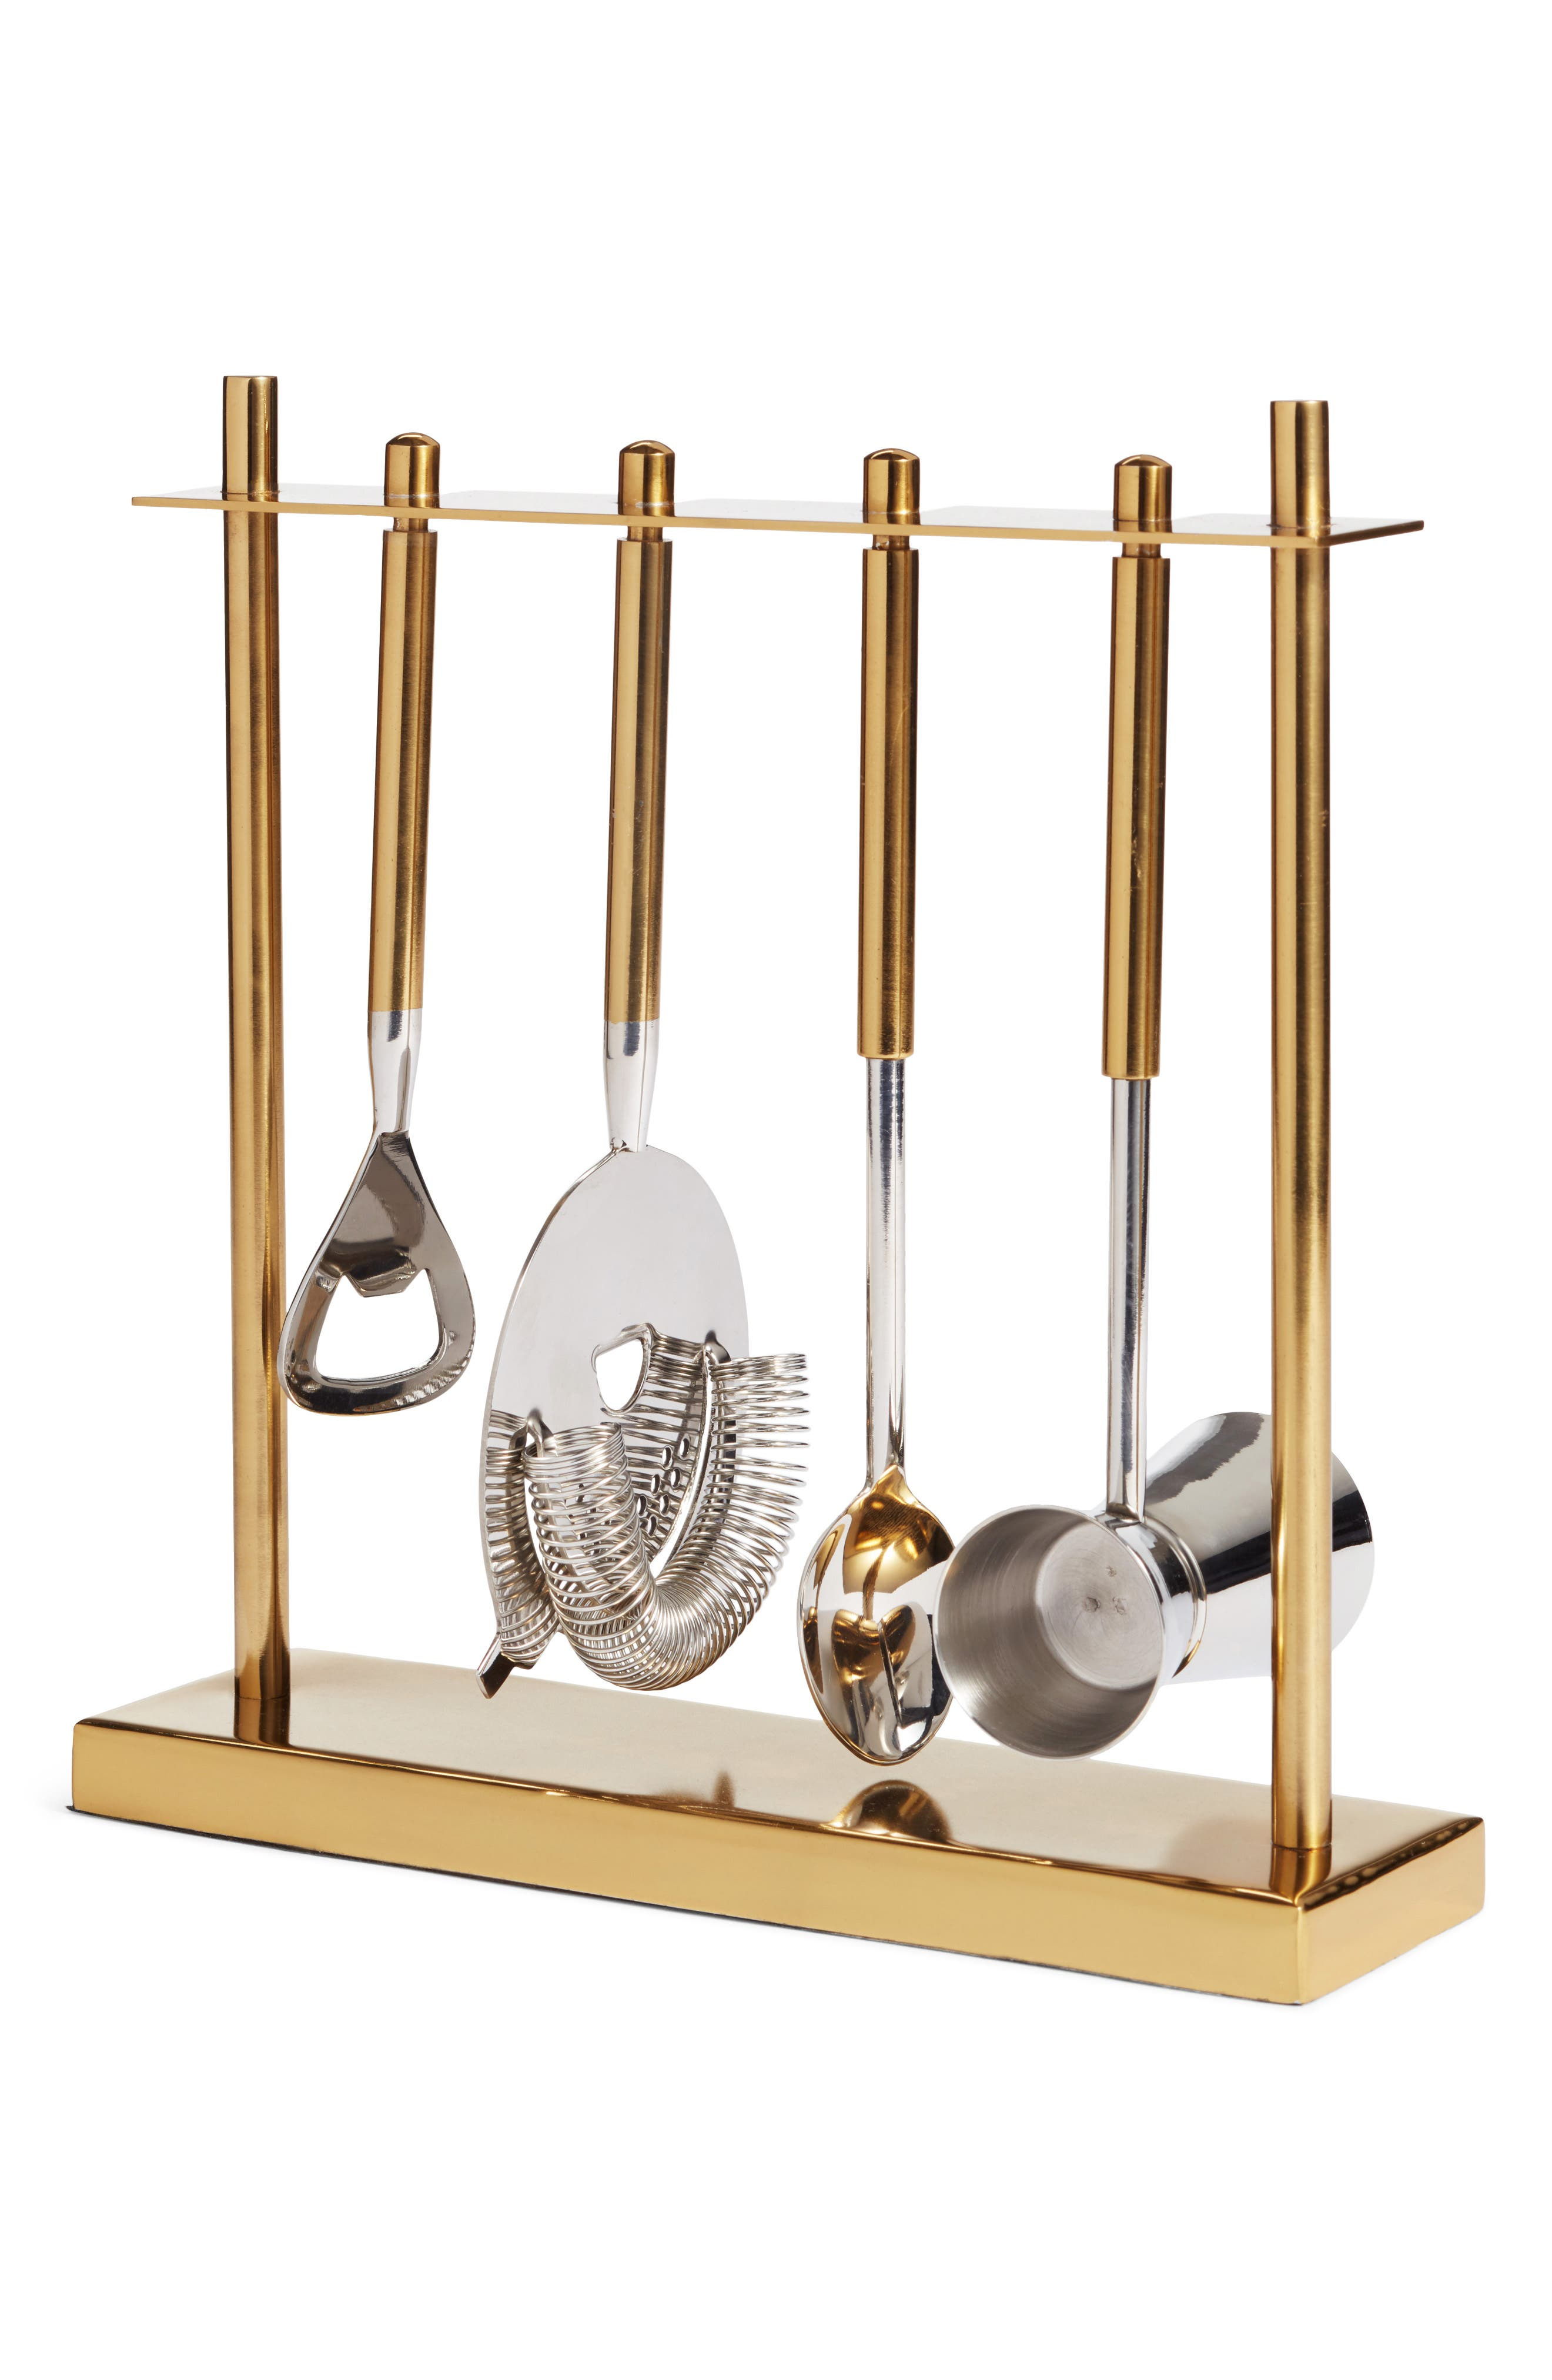 Nordstrom 5-Piece Stainless Steel Bar Tool Set,                             Main thumbnail 1, color,                             GOLD